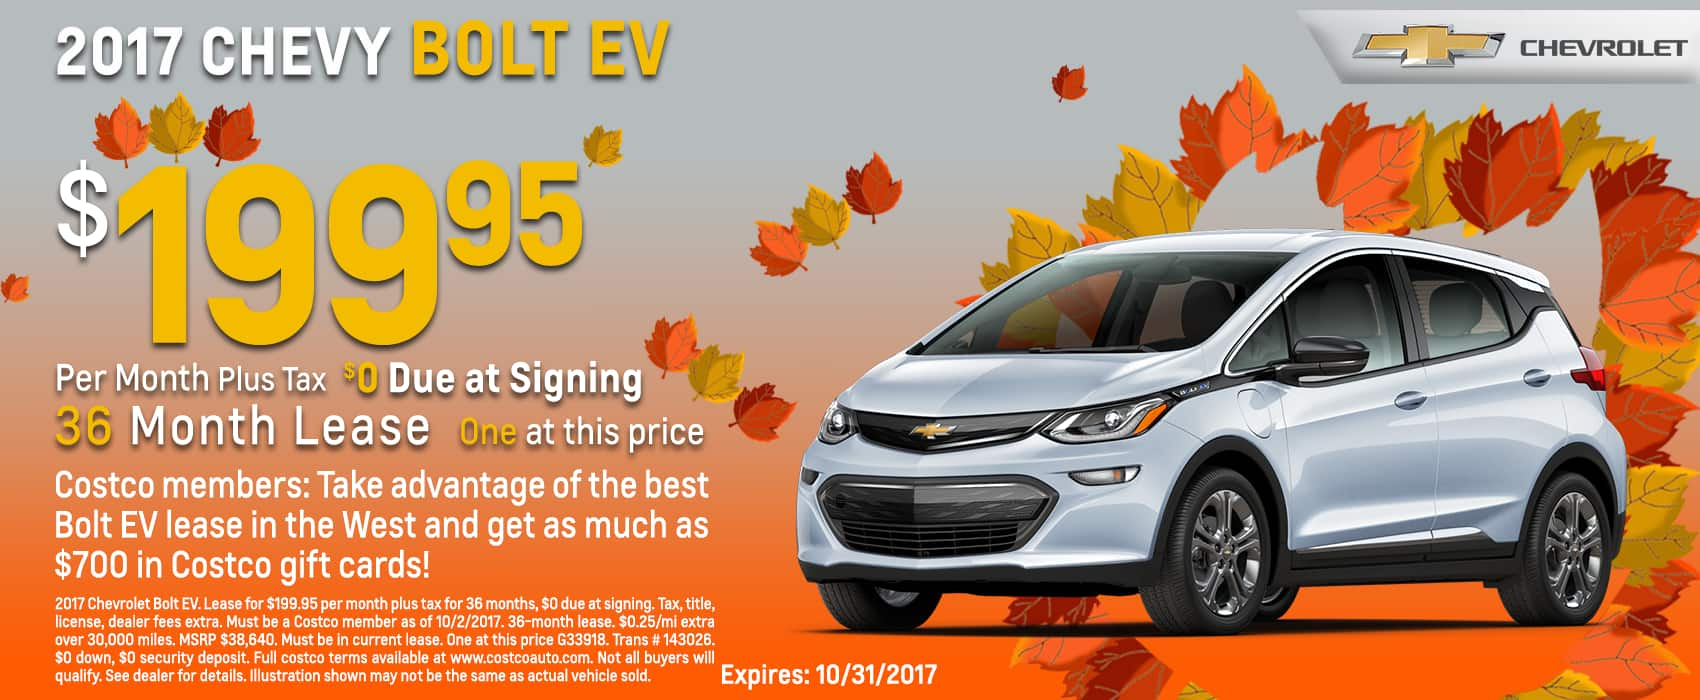 Chevrolet Lease Deals >> 2017 Chevy Bolt Ev North Cal Lease 10k 36 Mo 200 Per